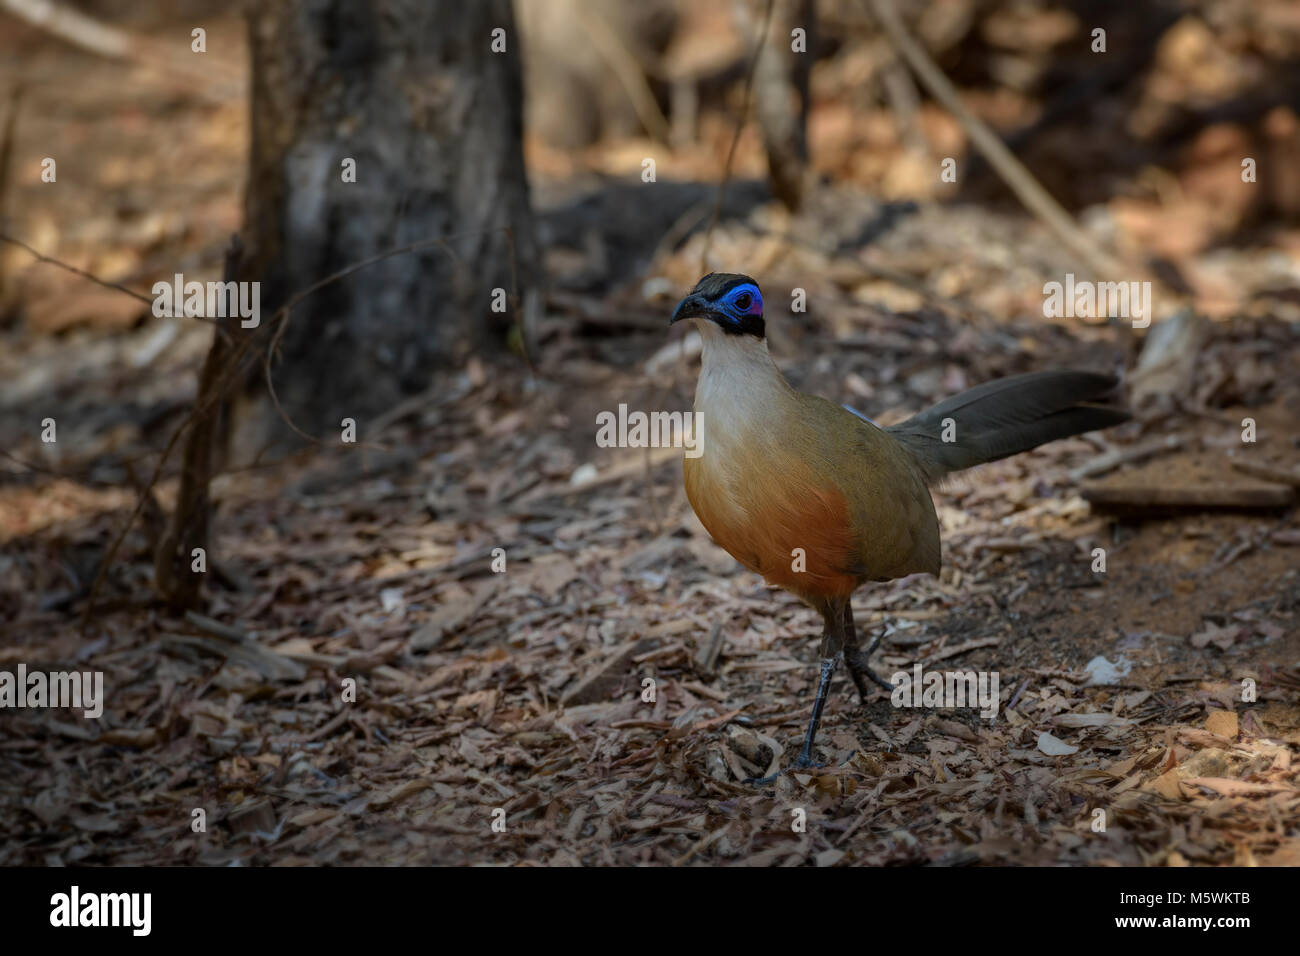 Giant Coua - Coua gigas, big ground bird from endemic in Western Madagascar dry forest. Blue head. - Stock Image